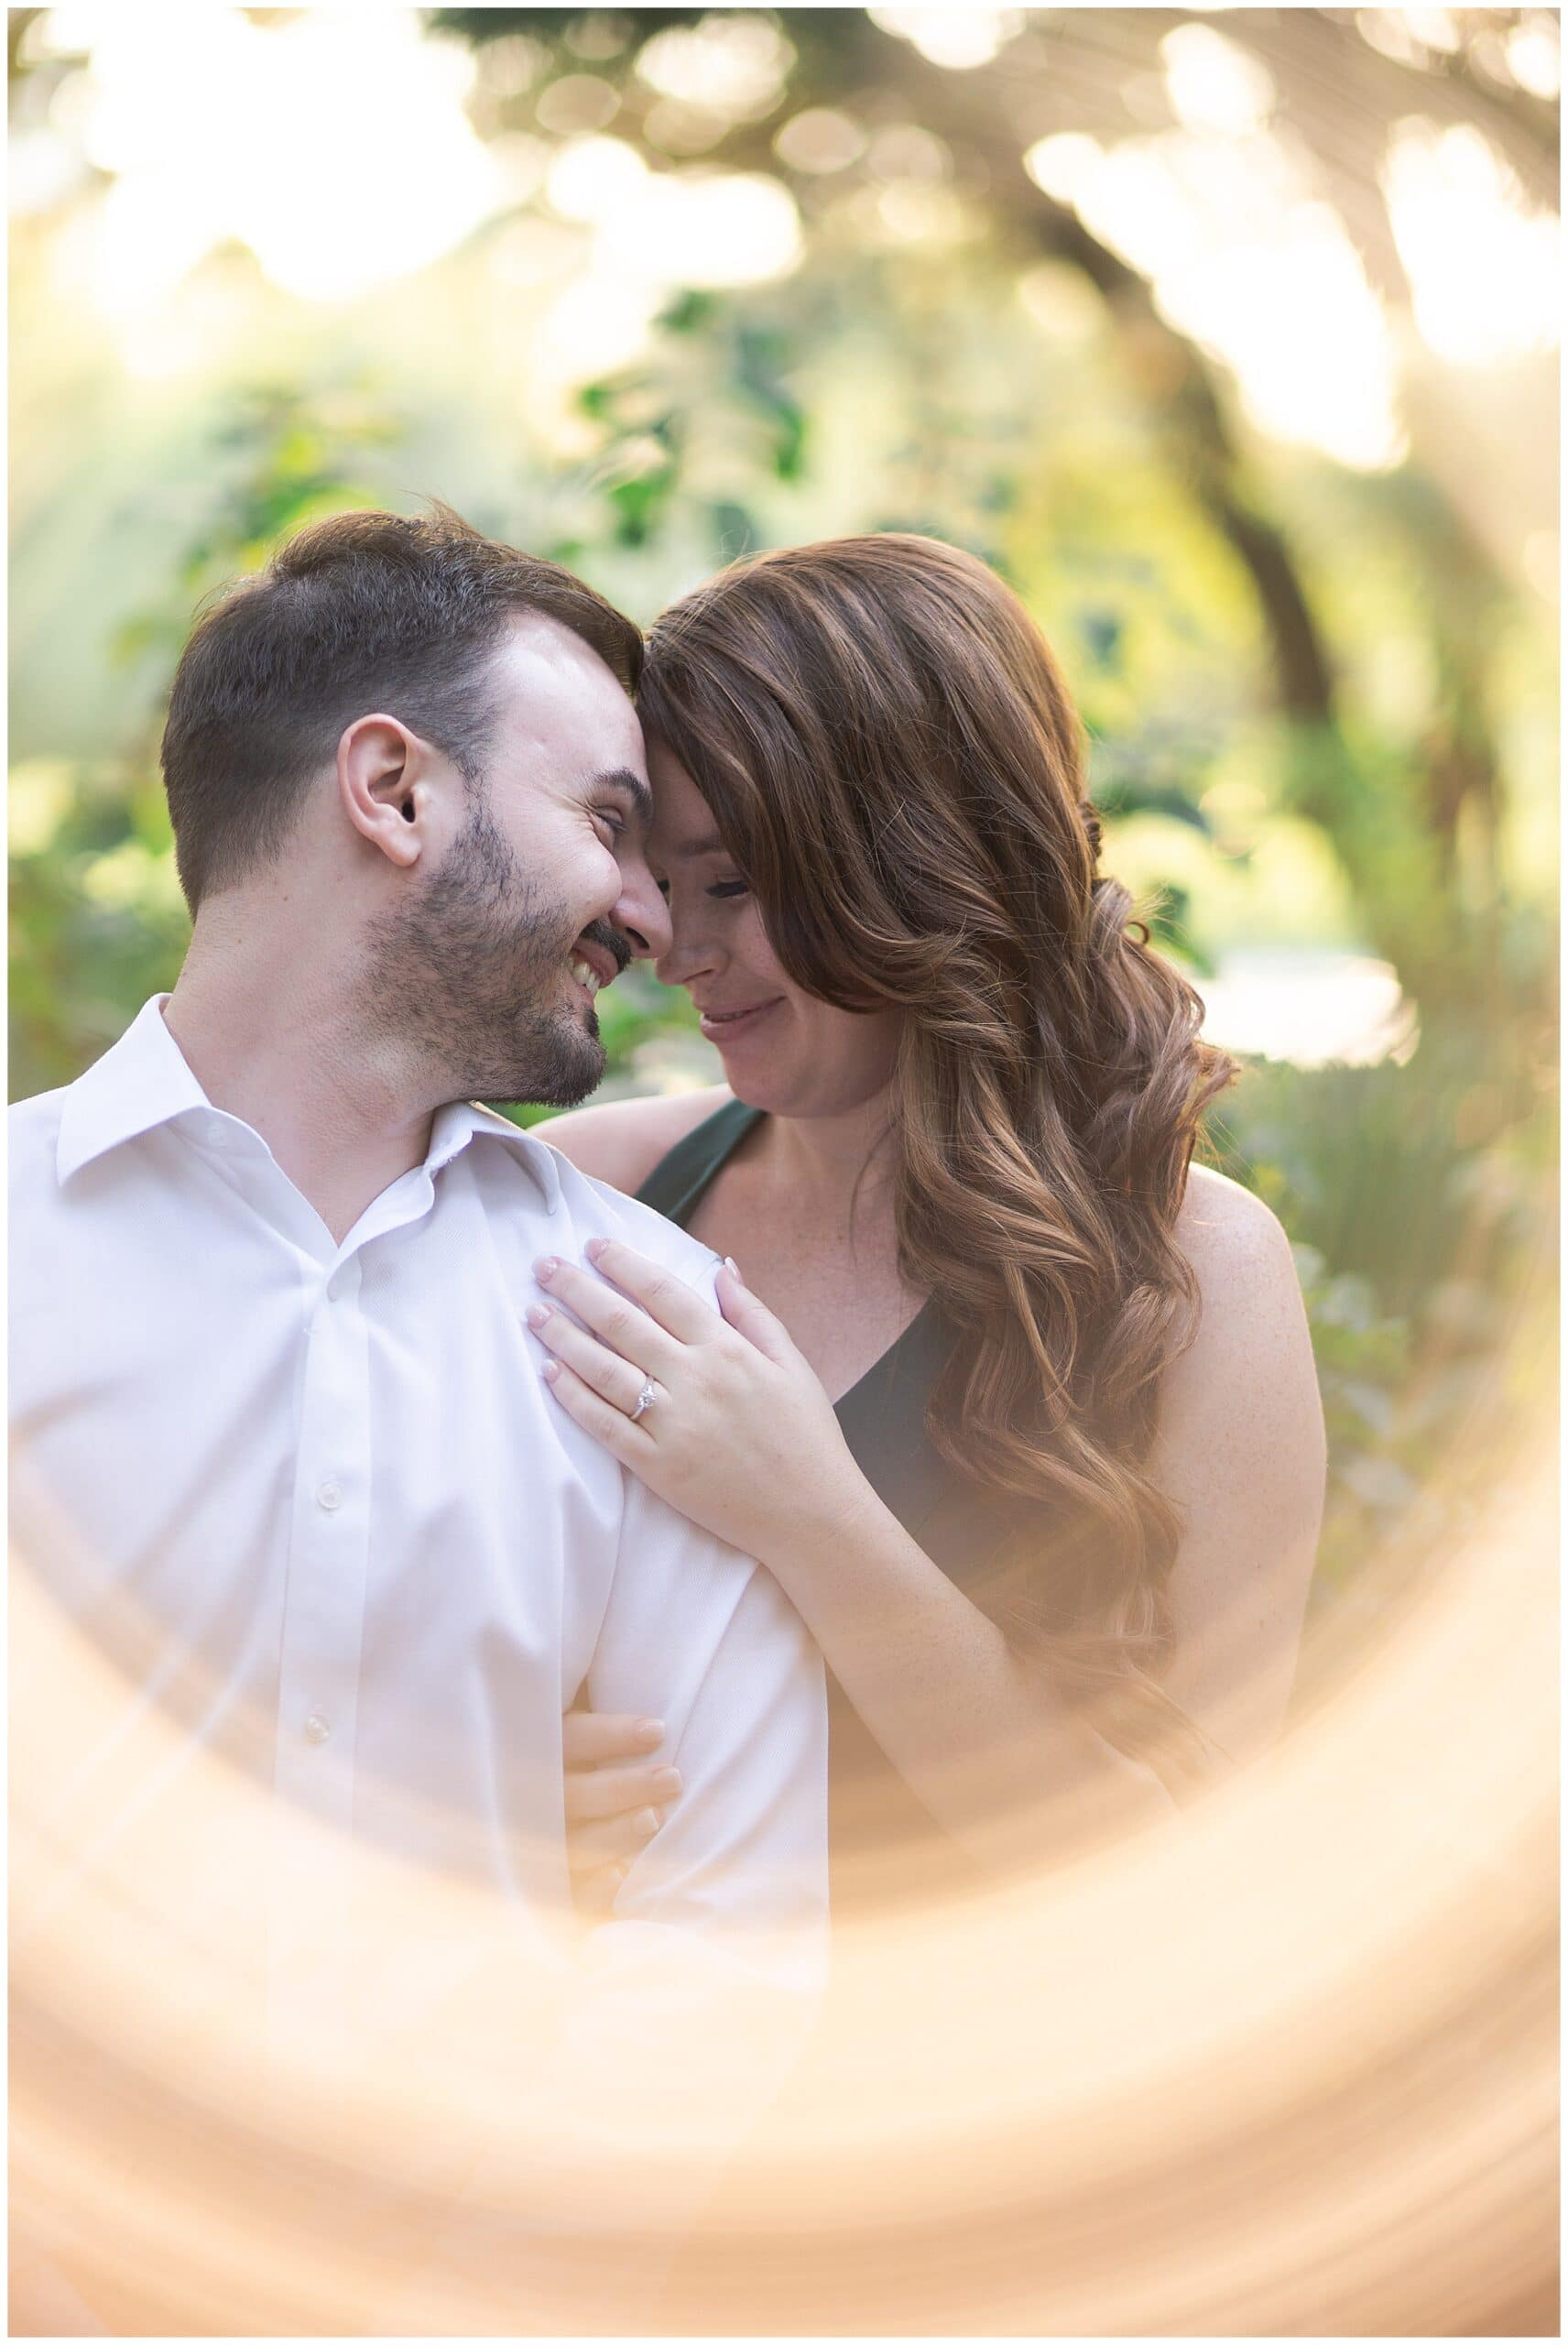 Houston engagement session at McGovern Centennial Gardens captured by Swish and Click Photography with a couple that's cuddling